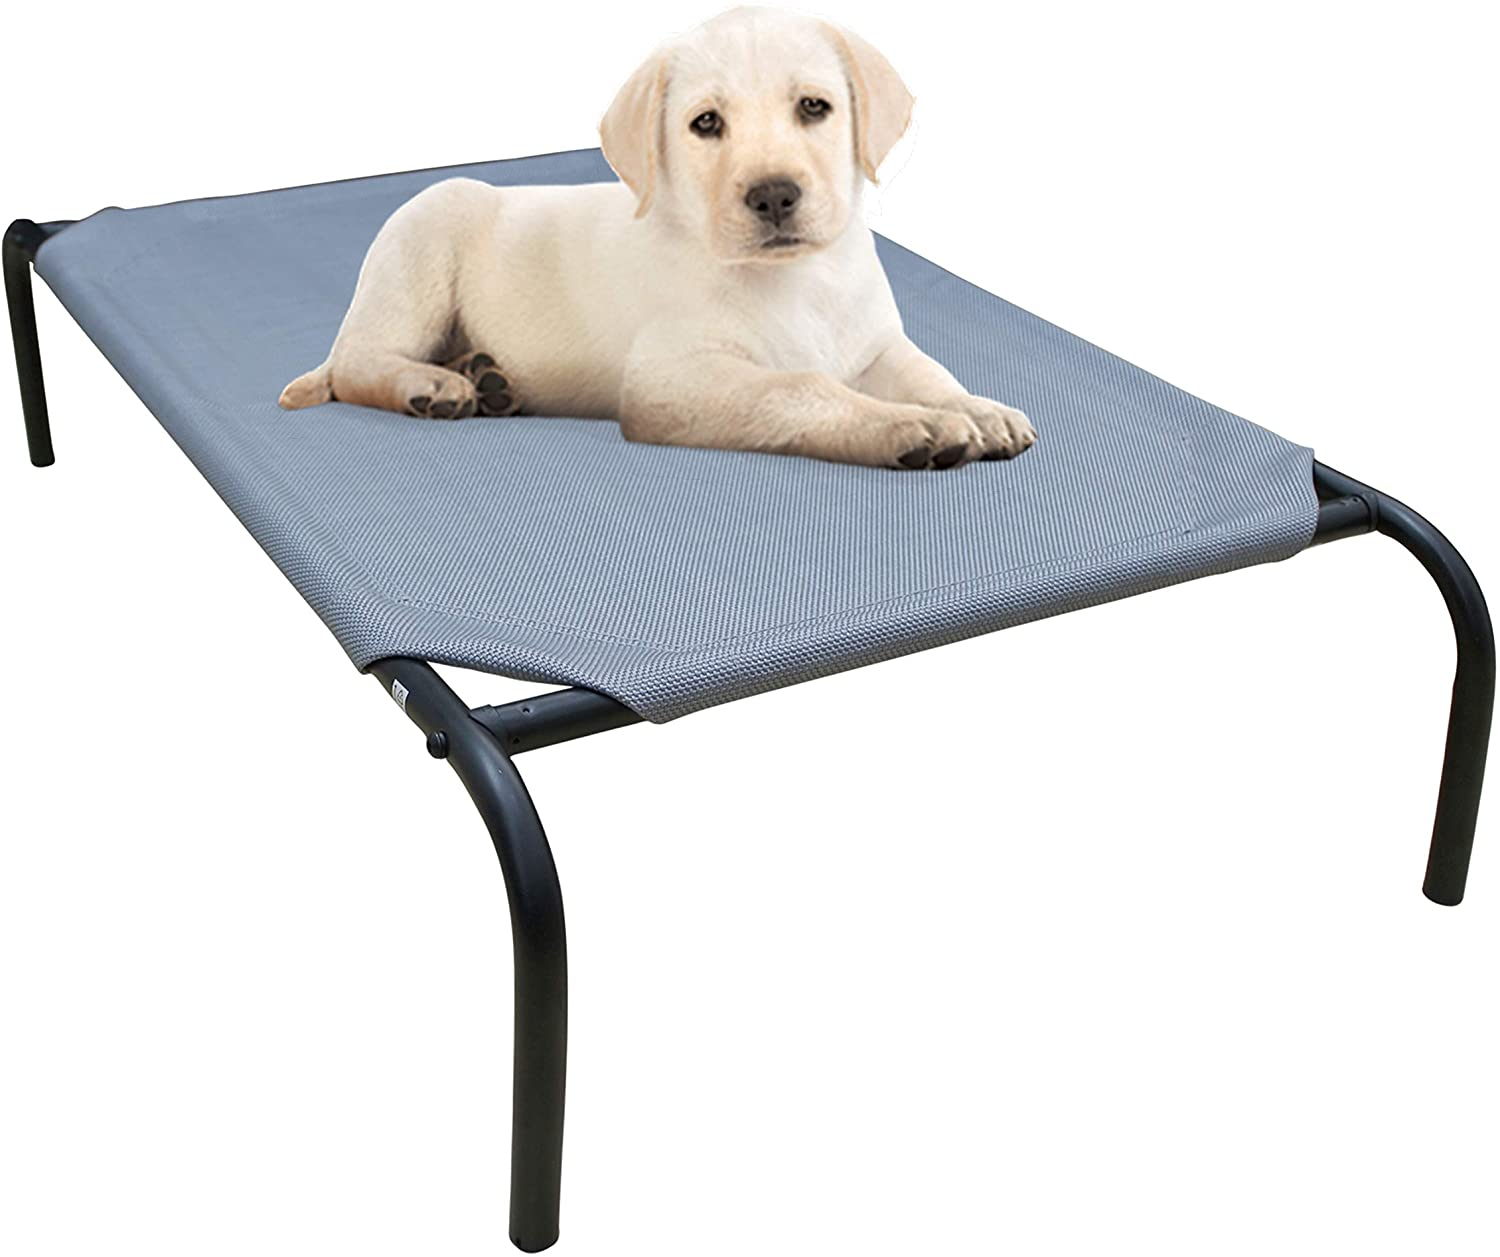 "PHYEX Heavy Duty Steel-Framed Portable Elevated Pet Bed, Elevated Cooling Pet Cot, 33"" L x 19"" W x 7.5"" H"